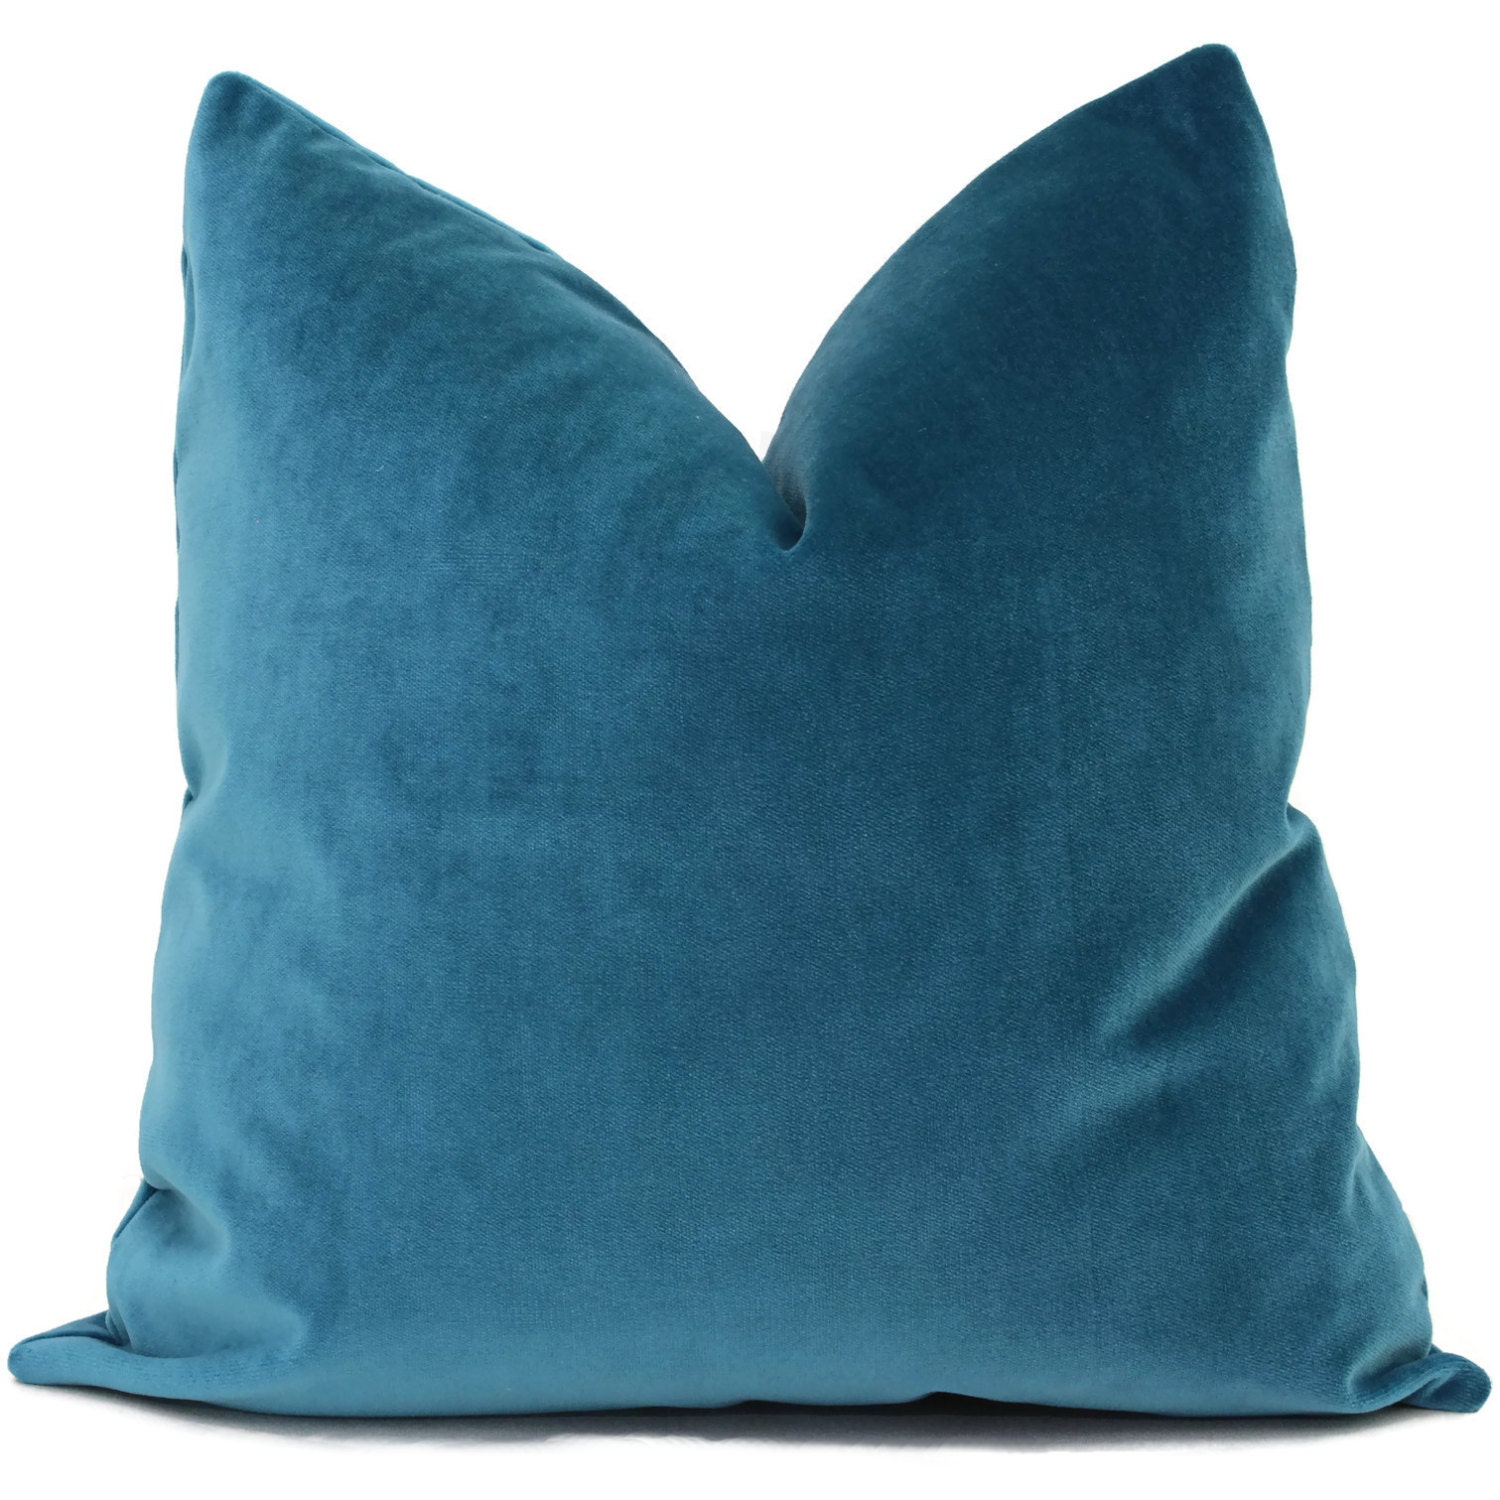 Peacock Blue Throw Pillow : Velvet Pillow Peacock Blue Decorative Pillow Cover by PopOColor